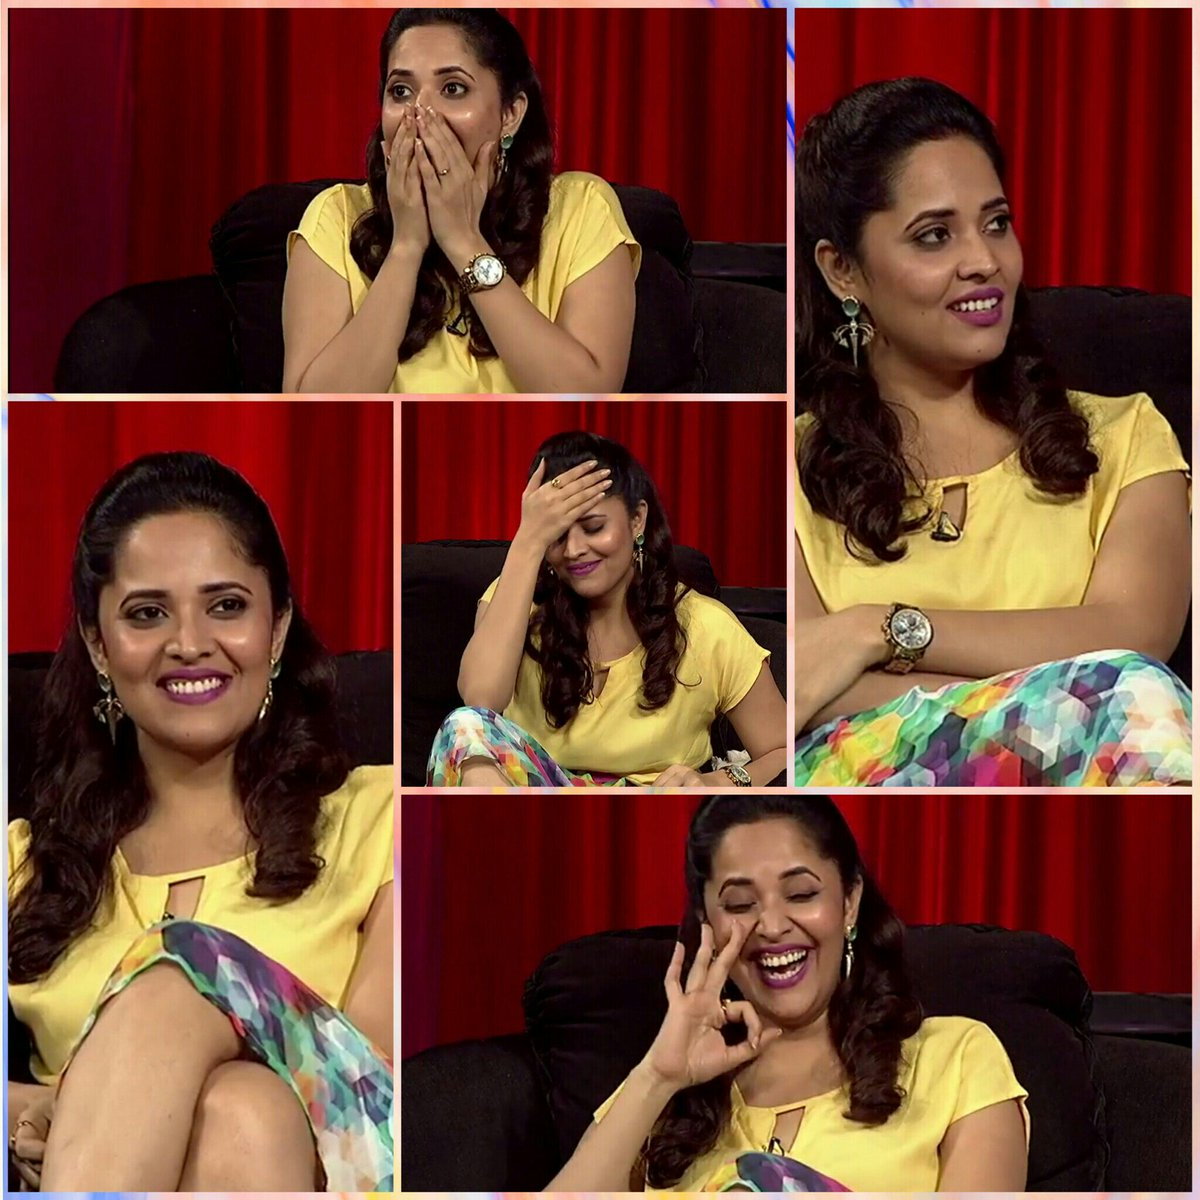 #nofilterneeded cuteness to the core as always @anusuyakhasba #cutiepie  <br>http://pic.twitter.com/8zrD0RJ2LH